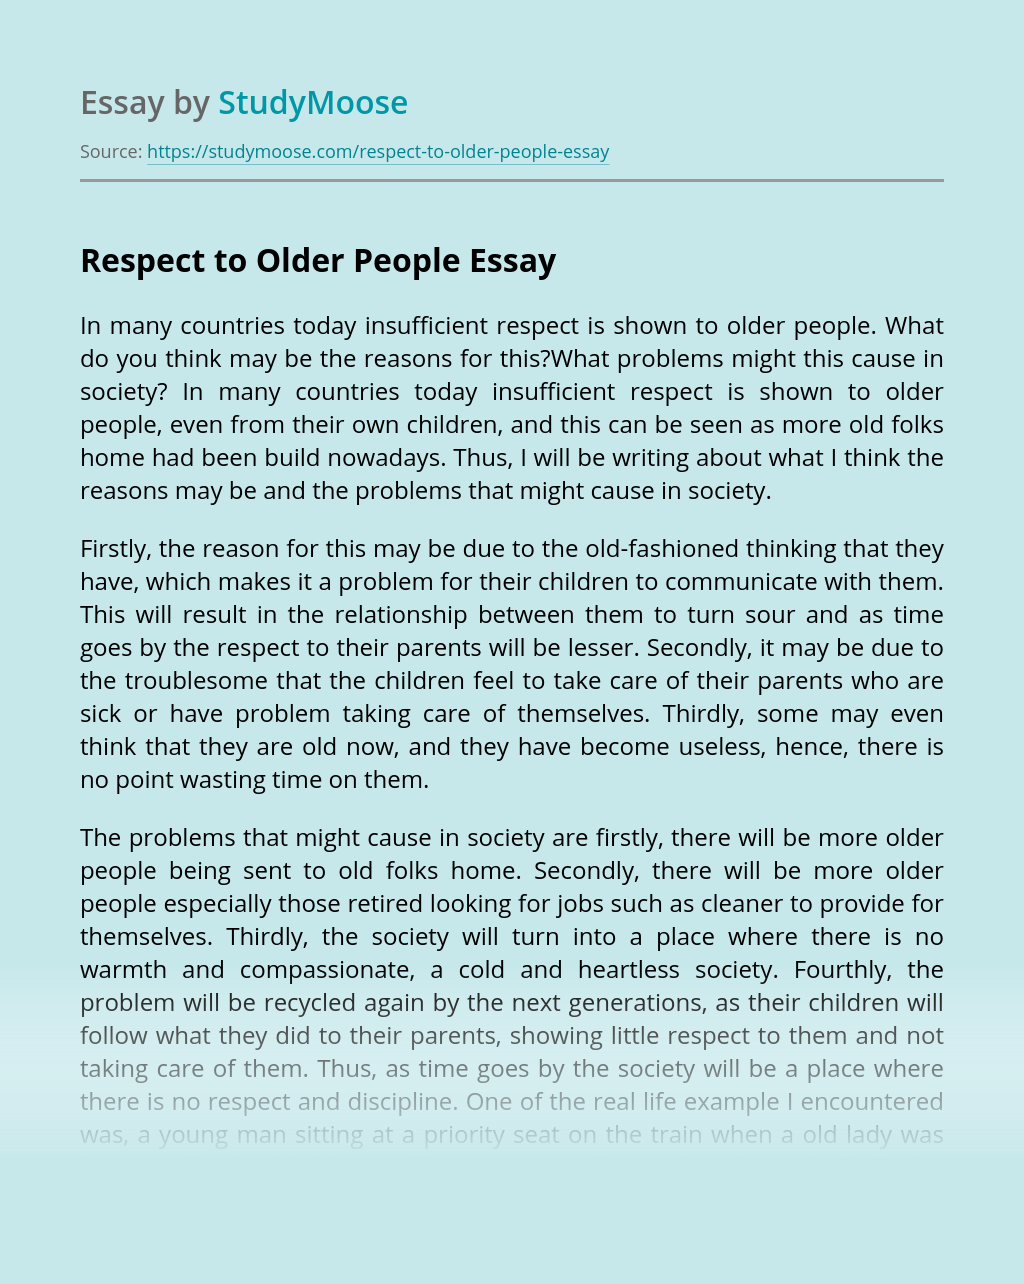 Respect to Older People